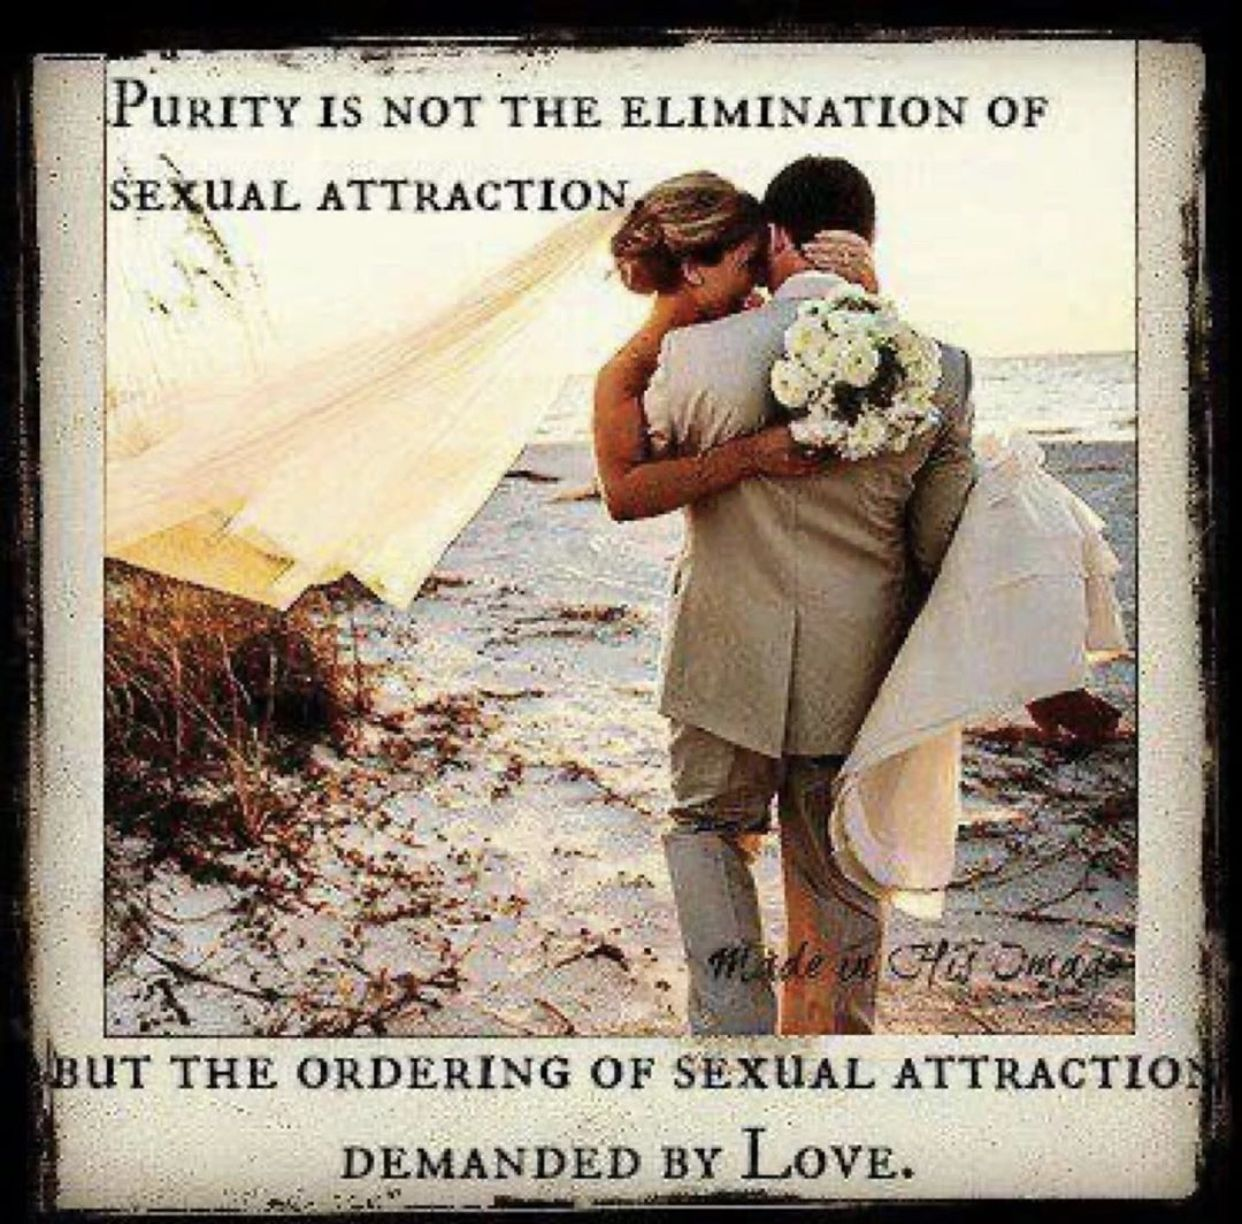 Christian dating no attraction